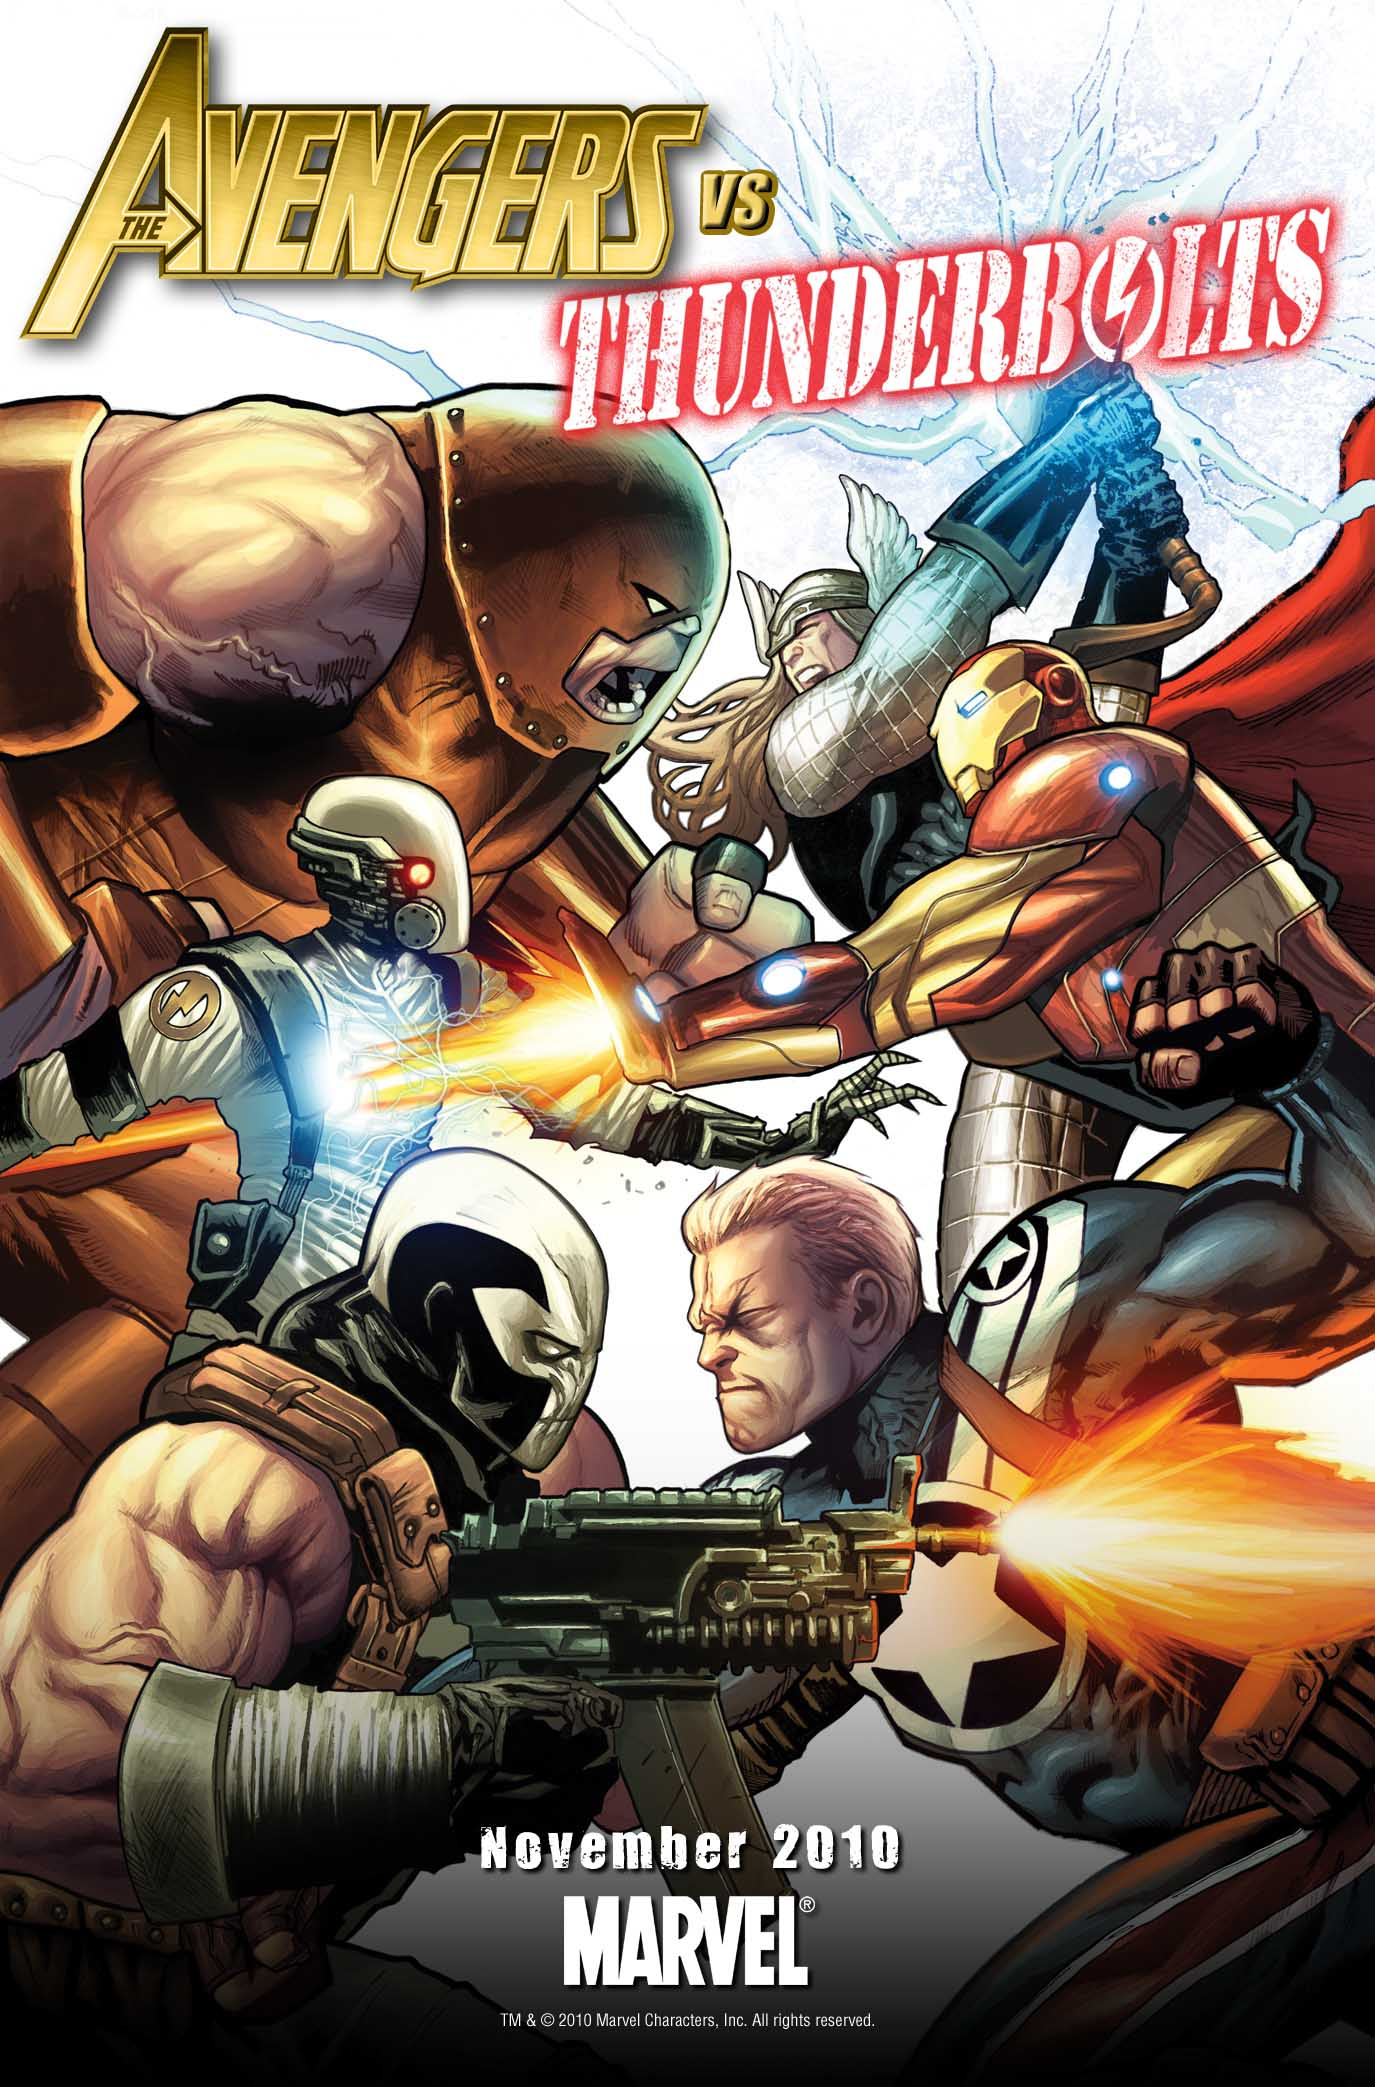 Avengers_vs_Thunderbolts